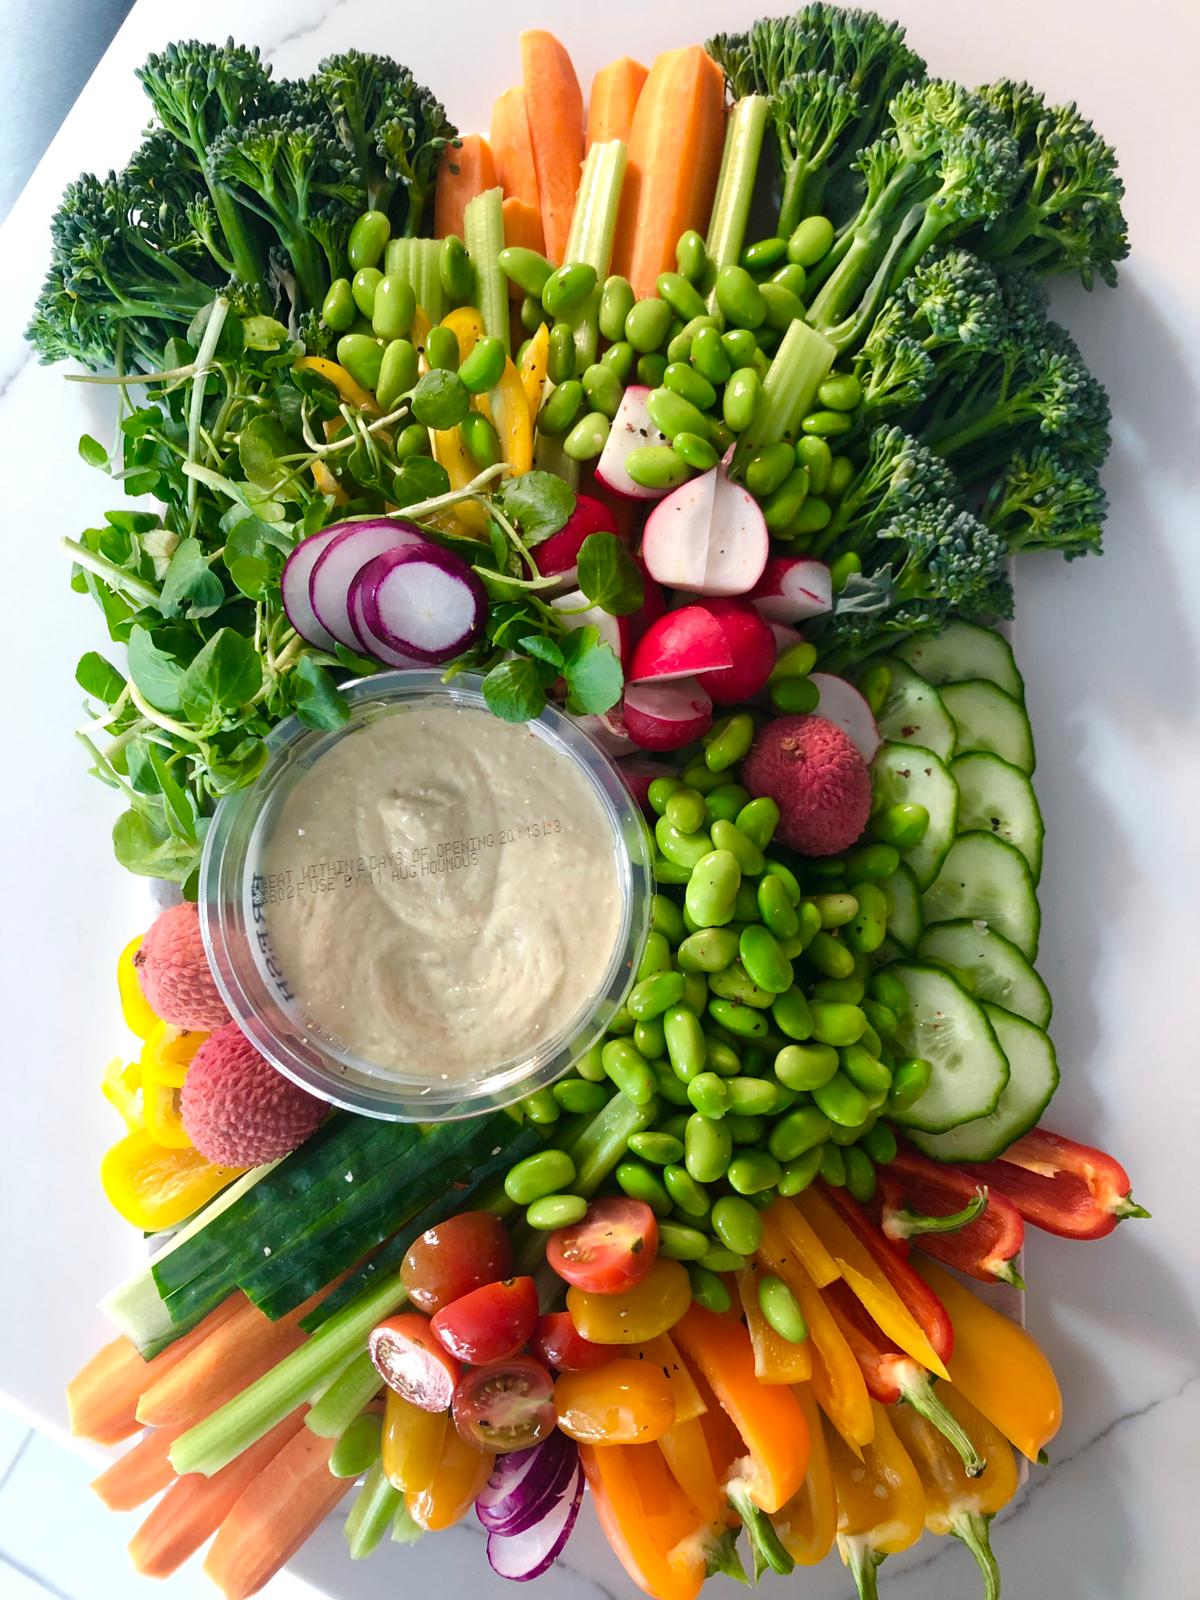 The Crudités